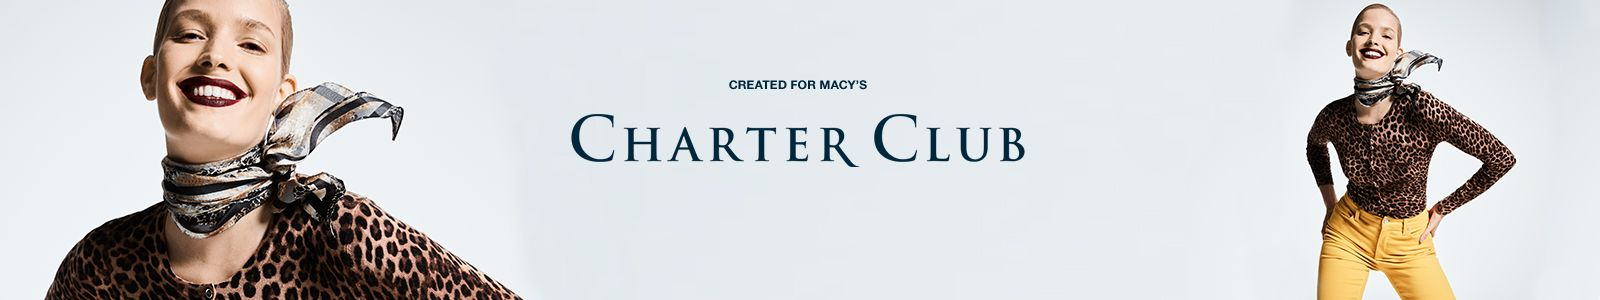 Created For Macy's, Charter Club